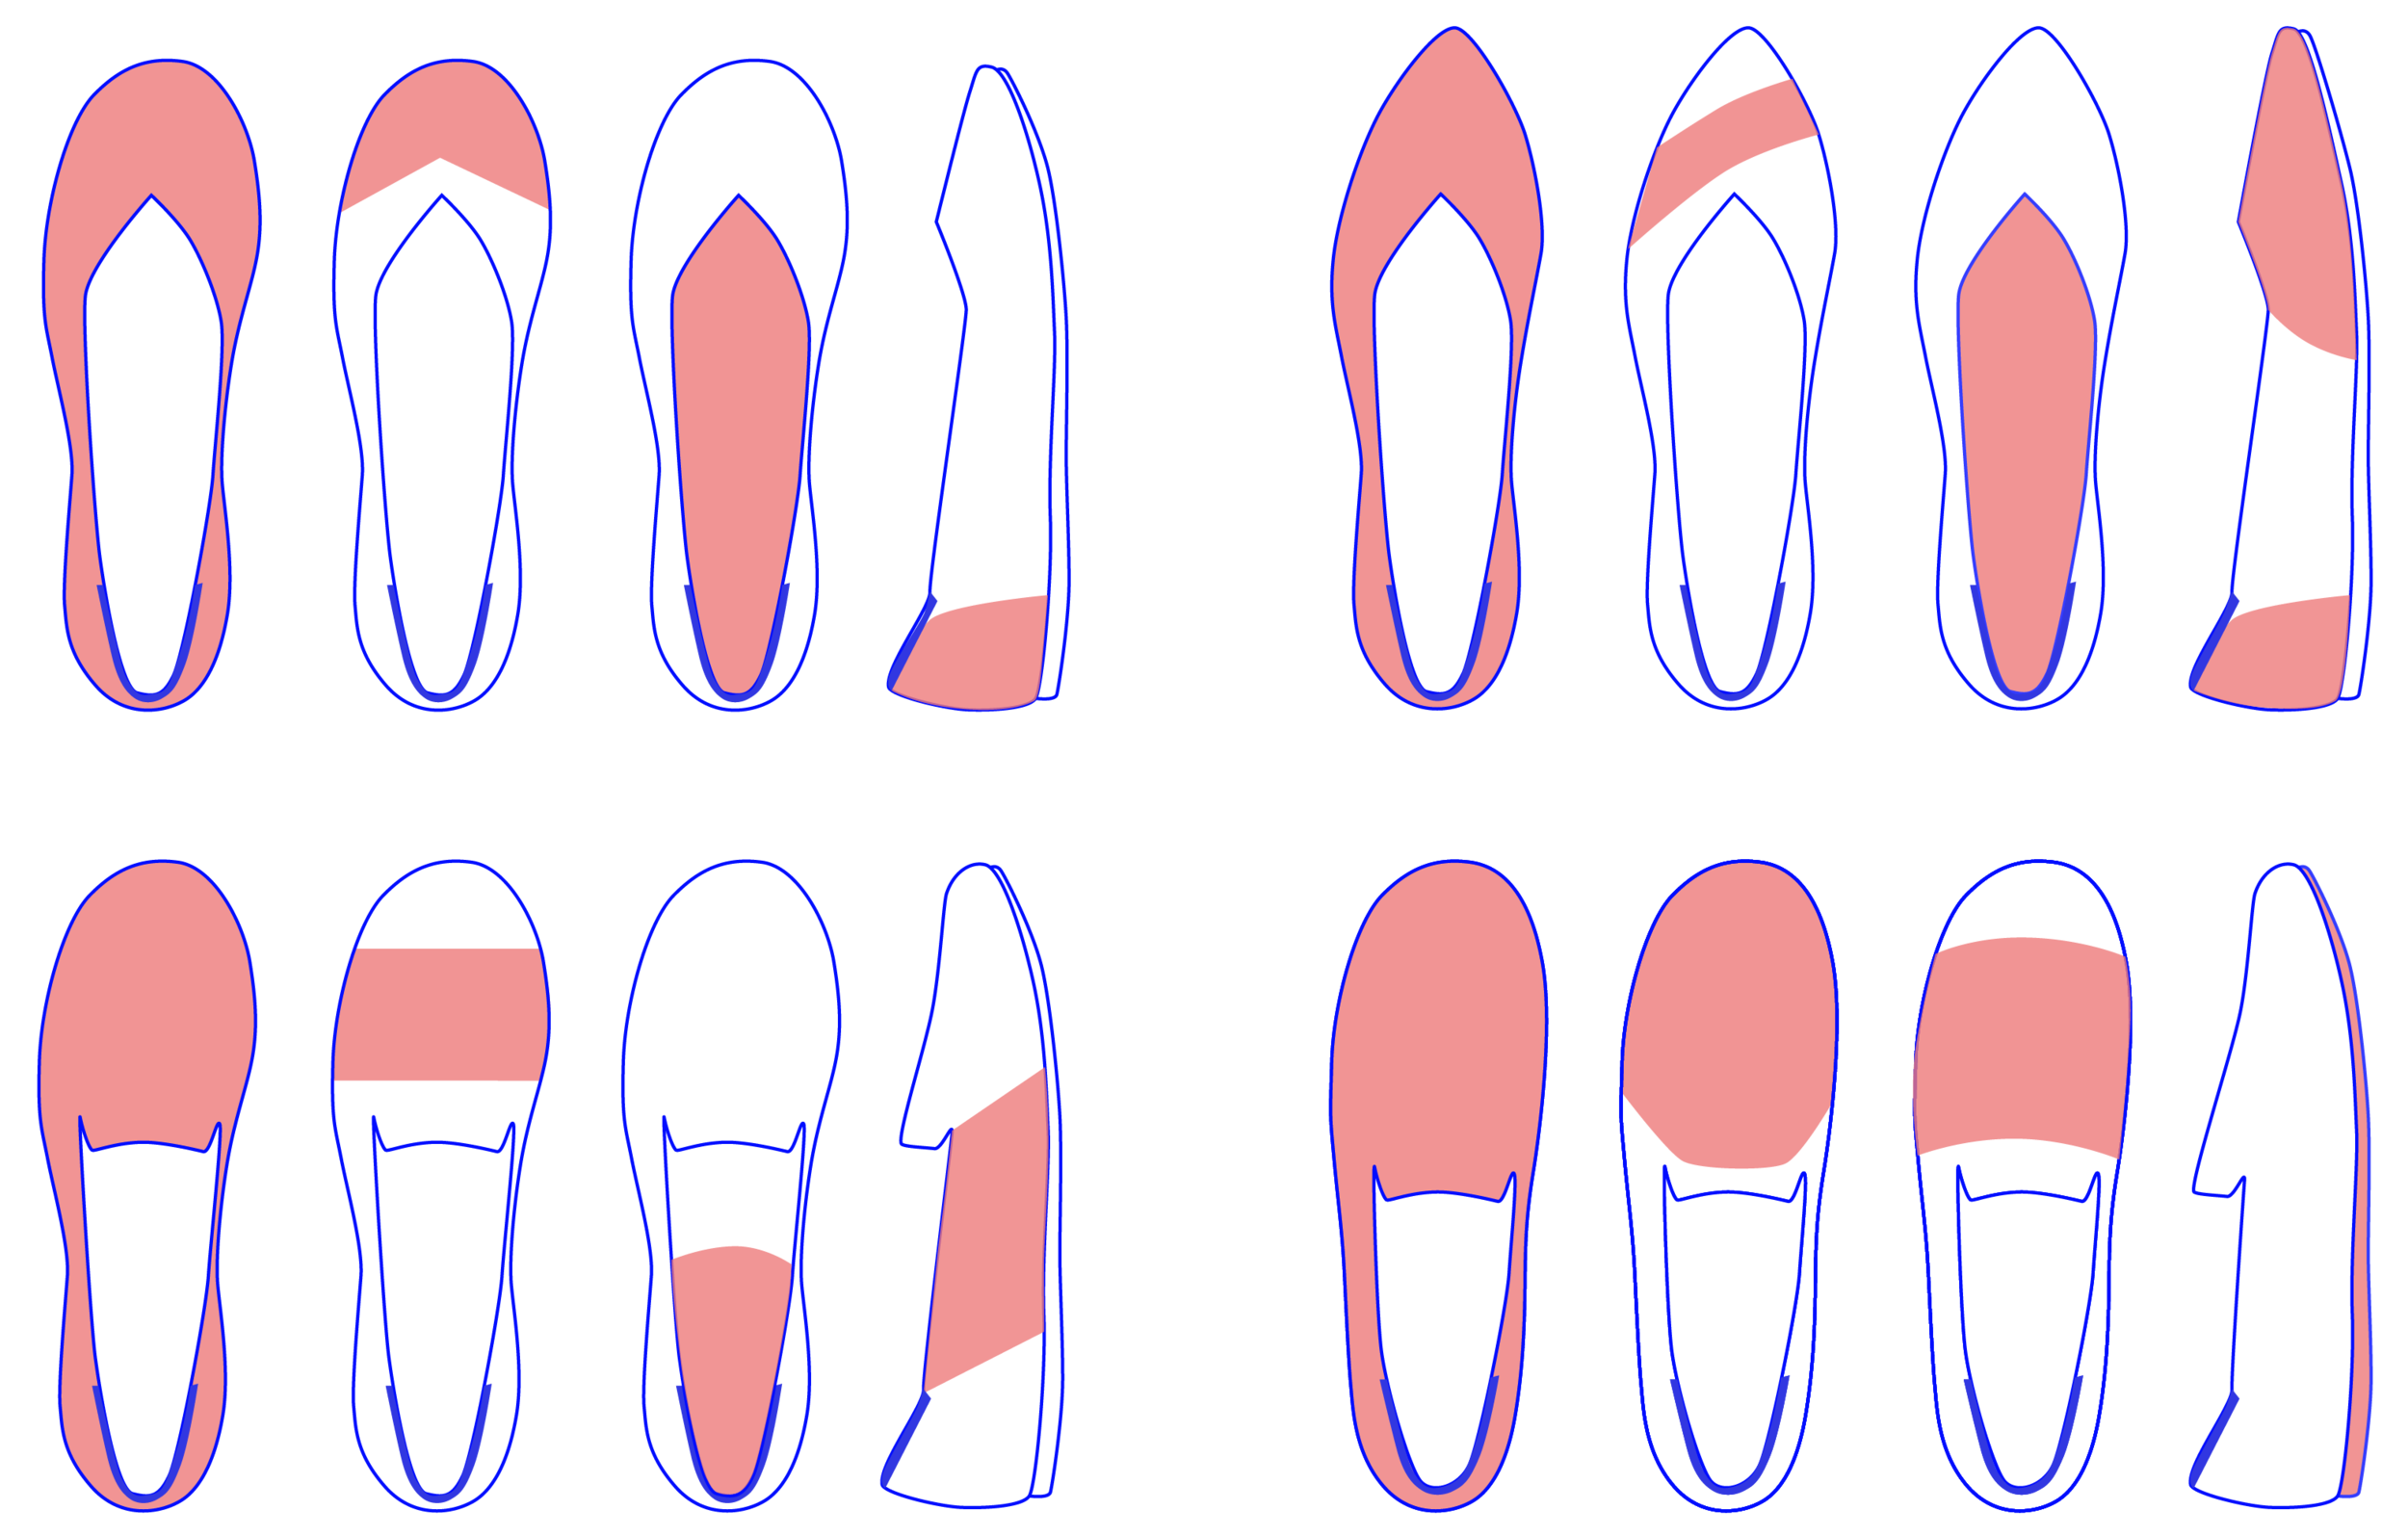 blocking concepts for four existing Rothy's shoe styles